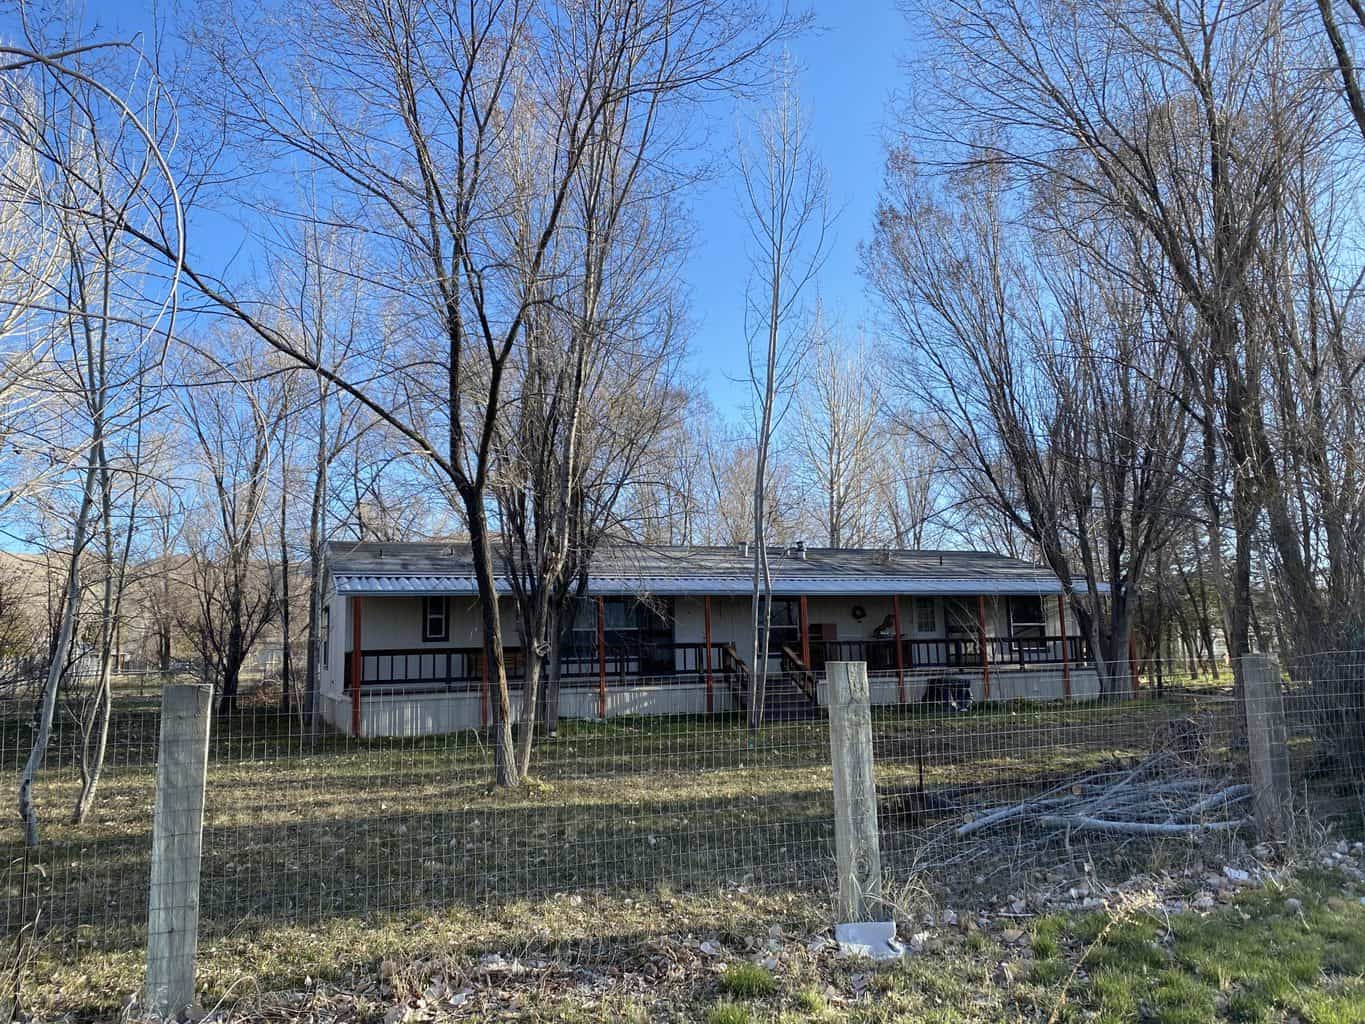 Check out this mini-farm in Cold Springs, Nevada (just north of Reno). Move-in ready with new Mohawk flooring, a fenced acre, mature fruit trees, irrigation, and plenty of room to roam. #fsbo #nevada #coldsprings